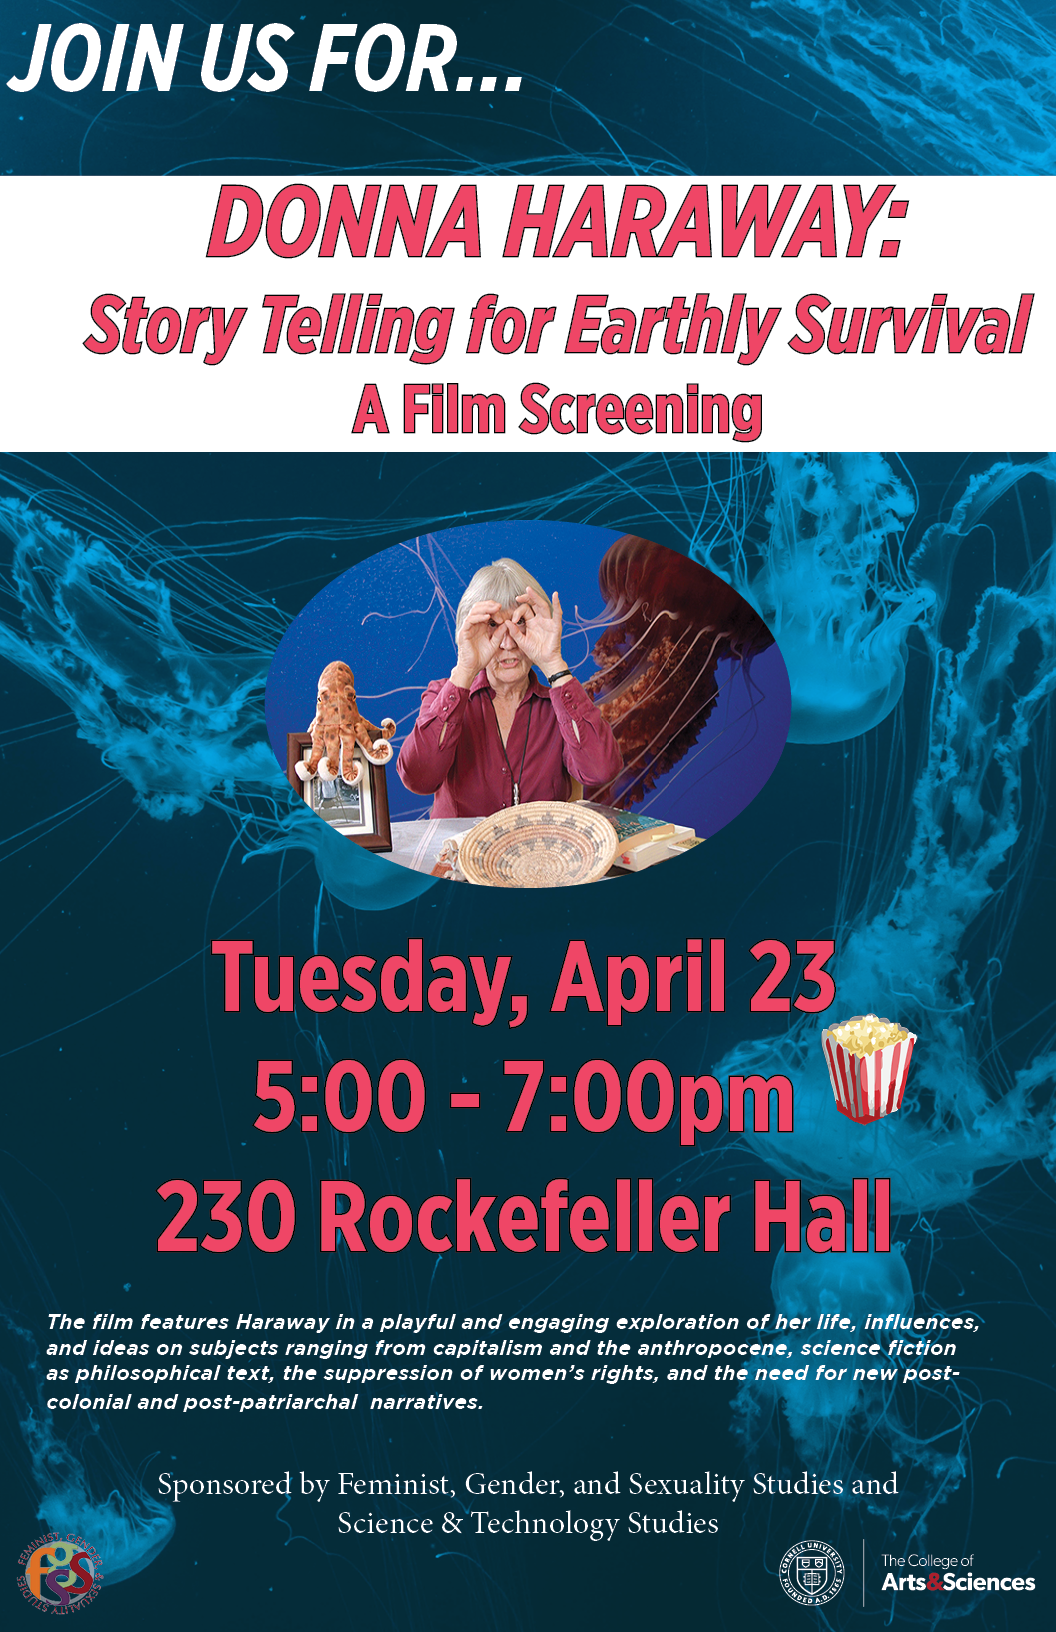 Donna Haraway: Story Telling for Earthly Survival, A Film Screening